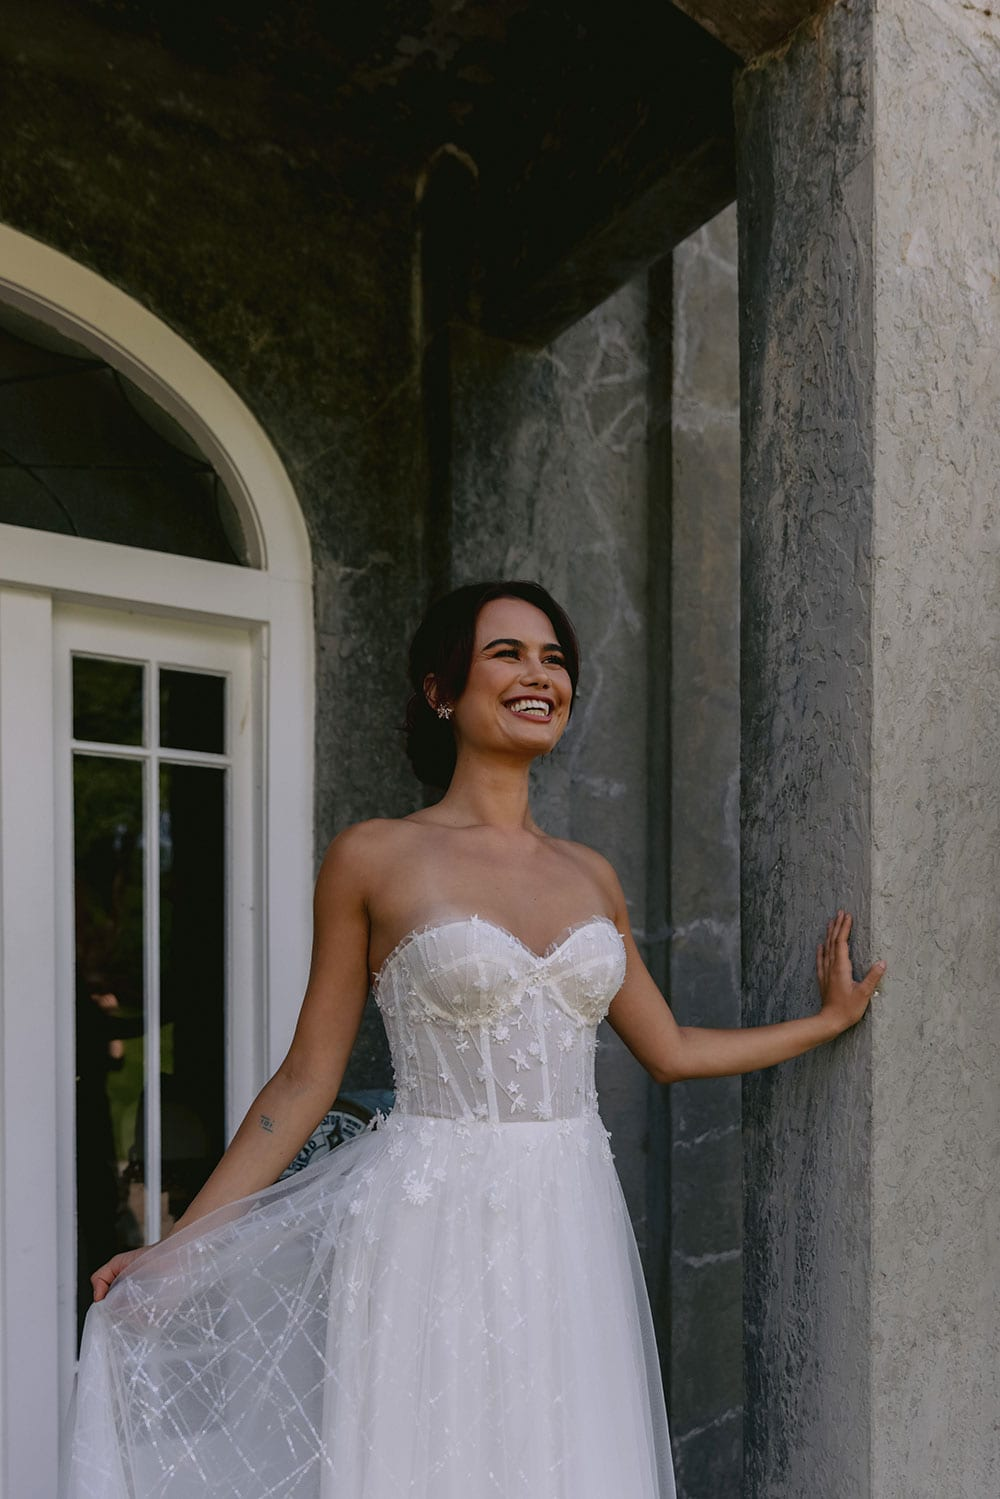 Hikari Wedding gown from Vinka Design - This modern wedding dress has a structured semi-sheer bodice with hand-appliqued lace of stars and flowers. The skirt is made with multiple layers of soft tulle. Model wearing gown holding skirt out in entrance to old building near Auckland.